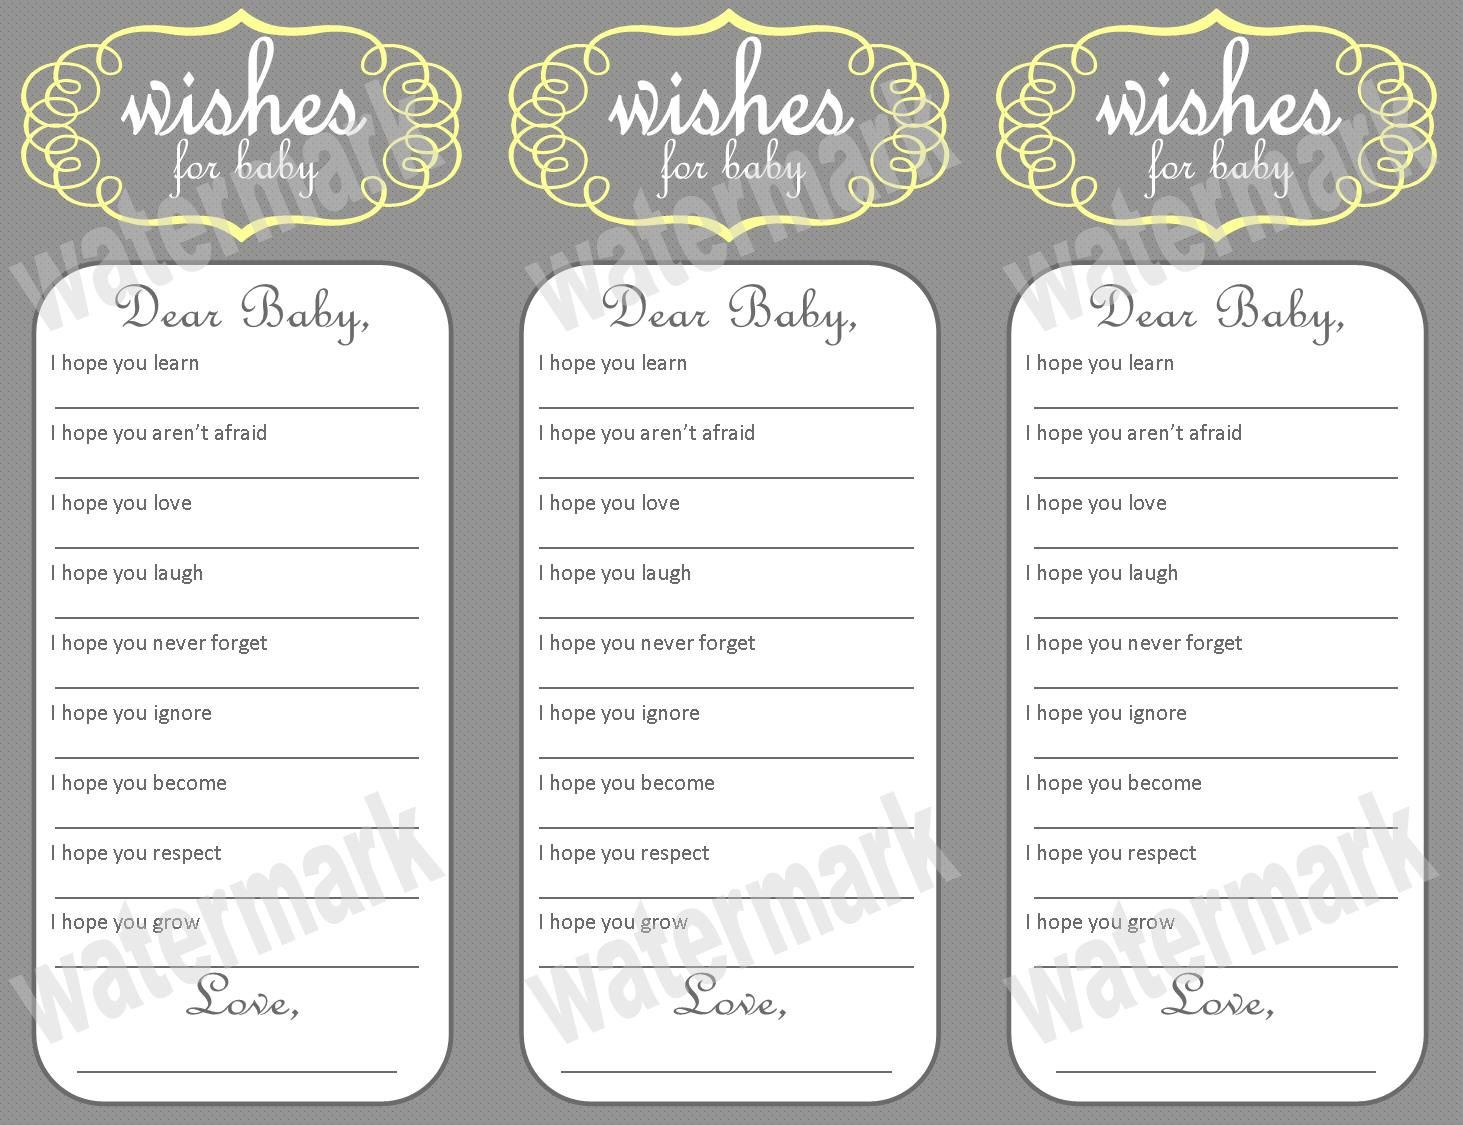 Wishes For Baby Free Printable Wishes For Baby